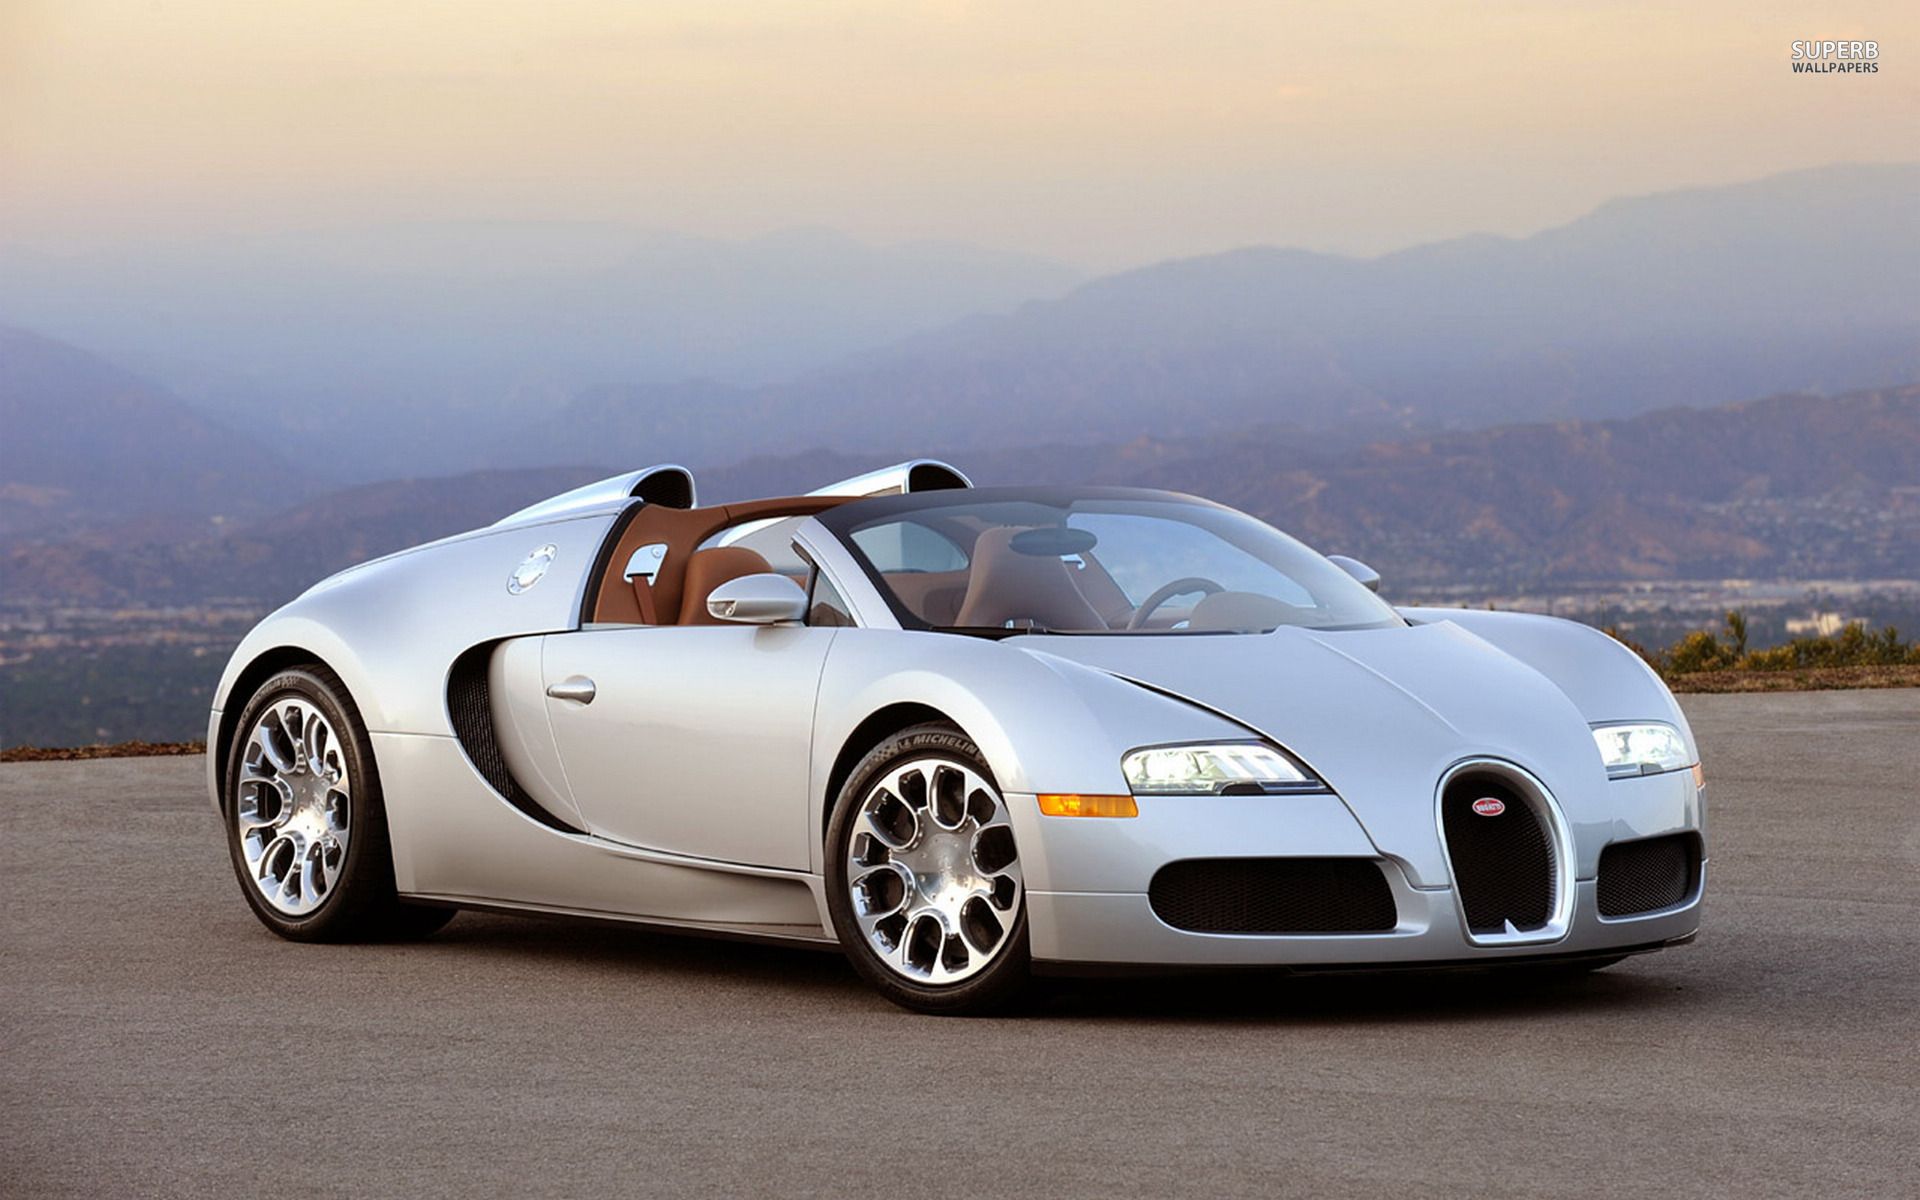 The Average Bugatti Customer Has About 84 Cars, 3 Jets And One Yacht - TechDrive - The Latest In Tech & Transport